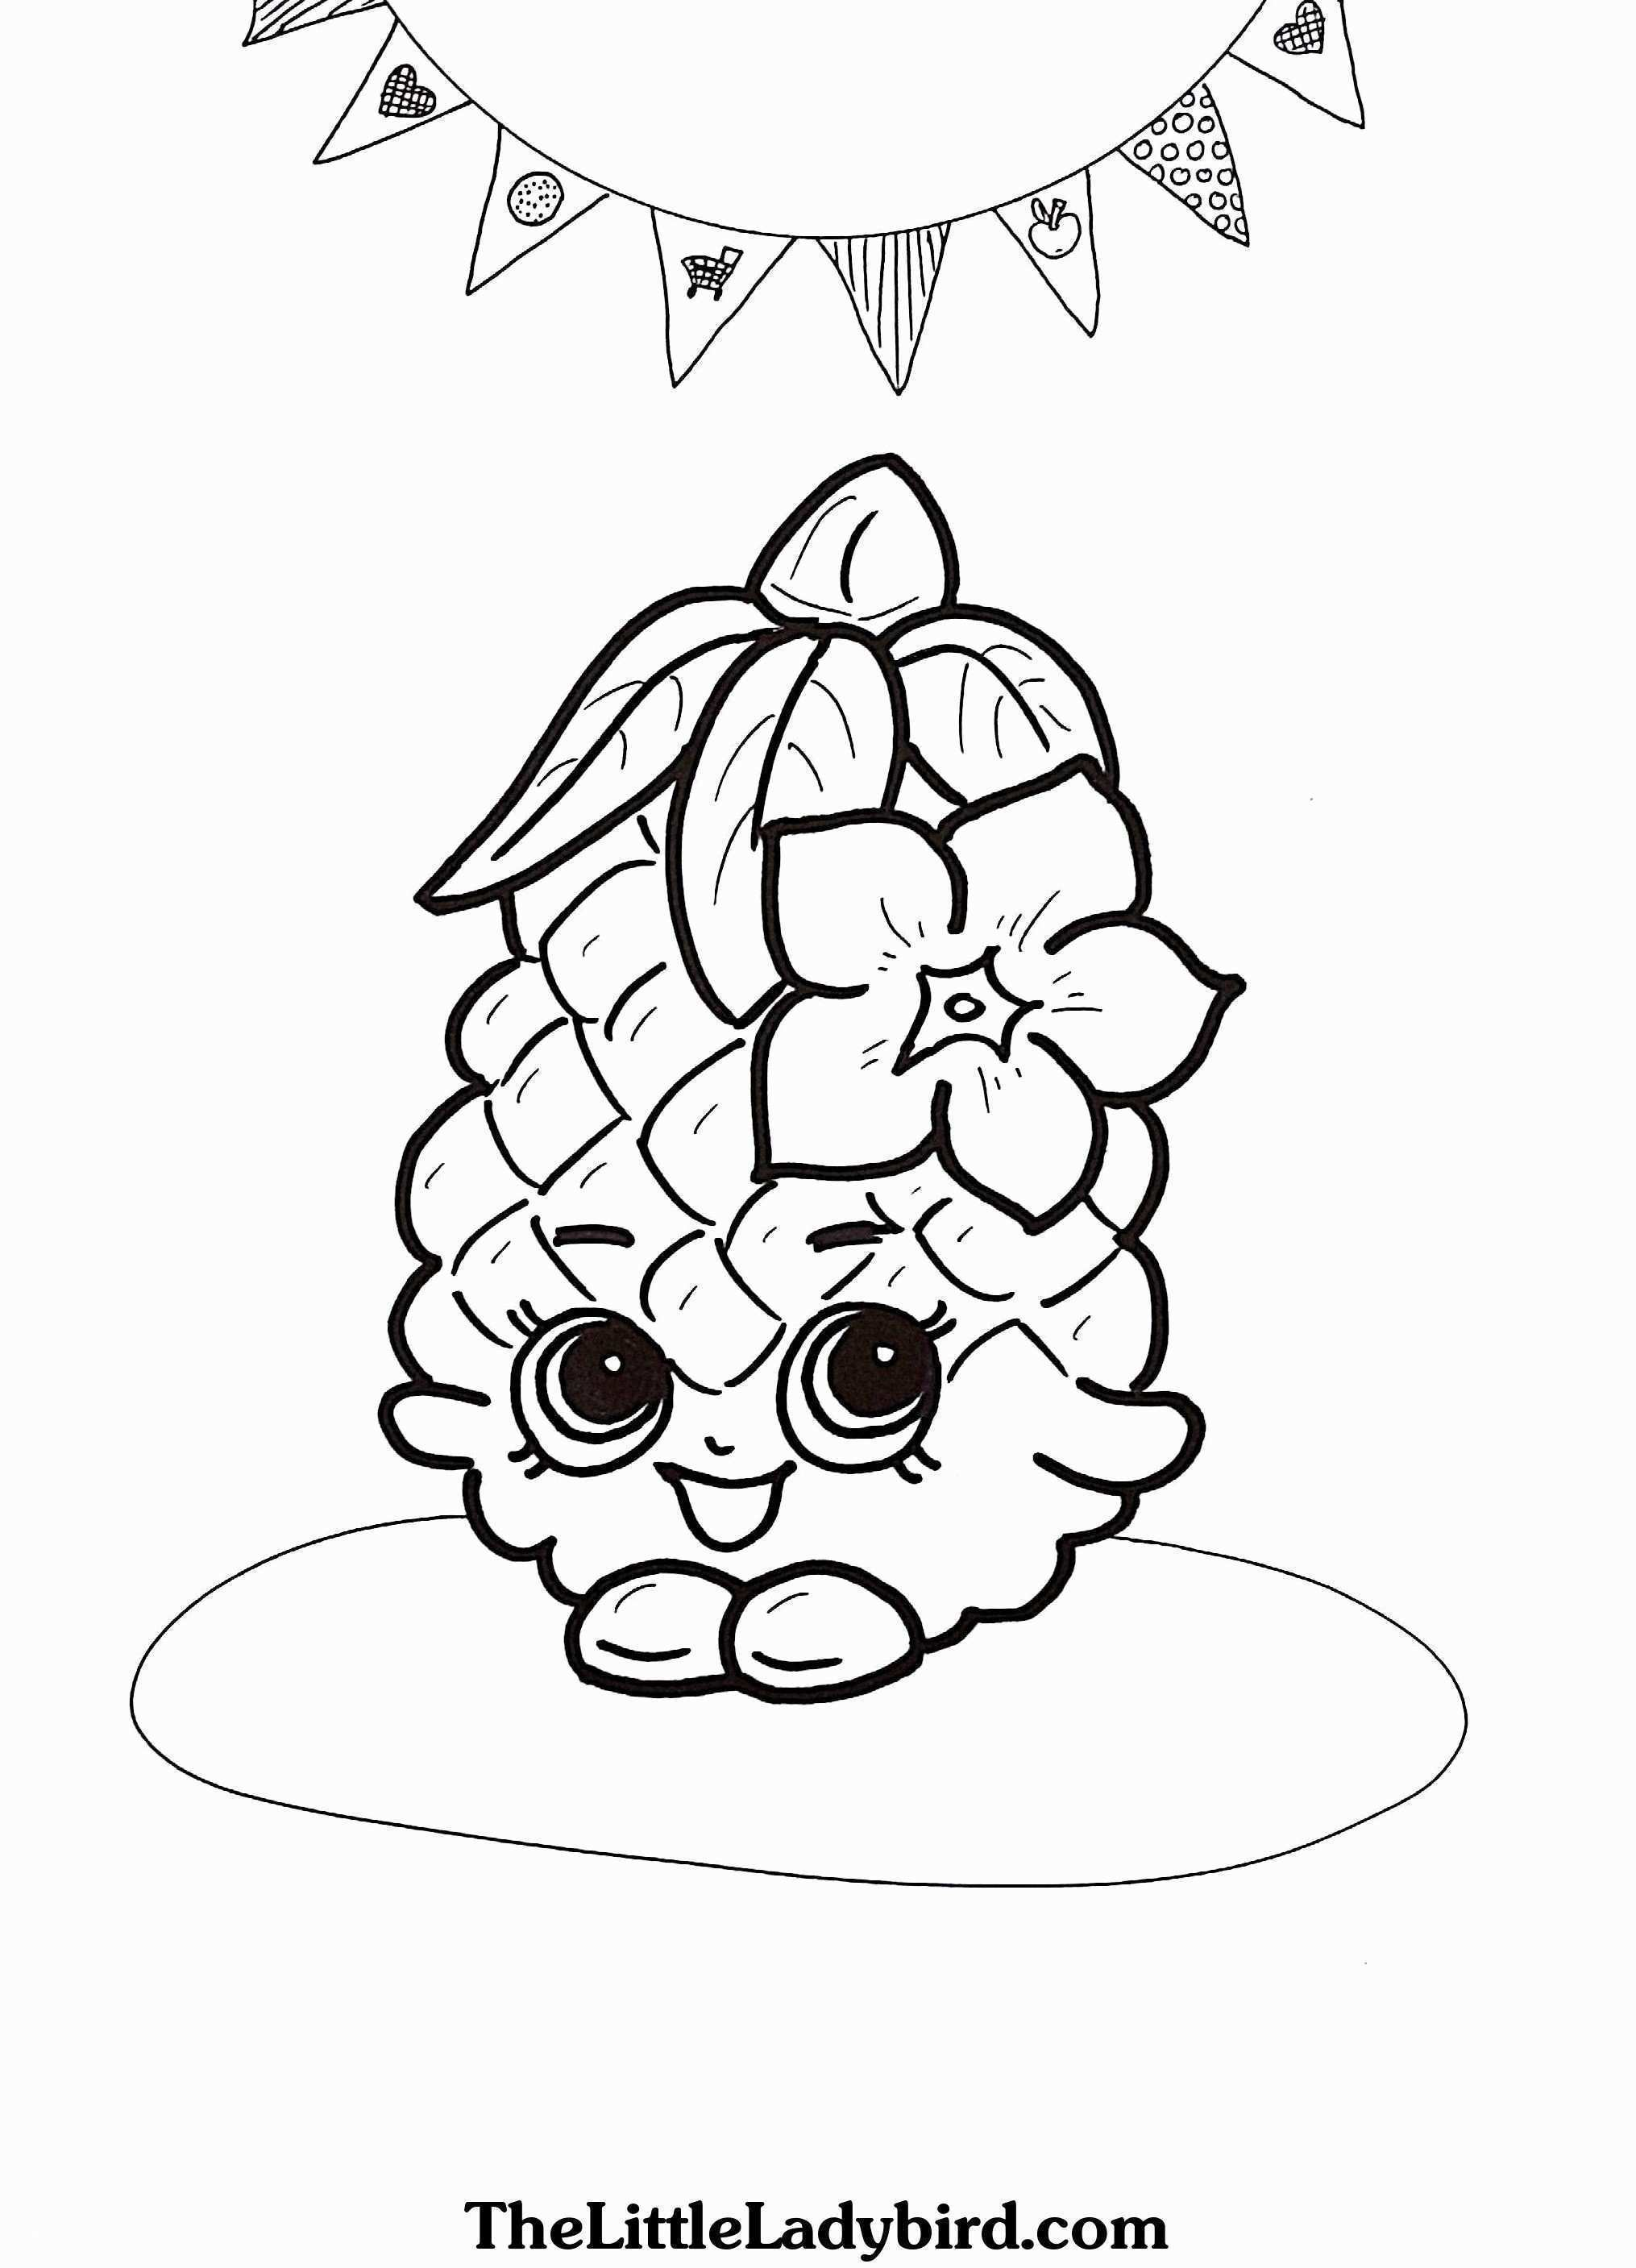 Pineapple Coloring Page heathermarxgallery